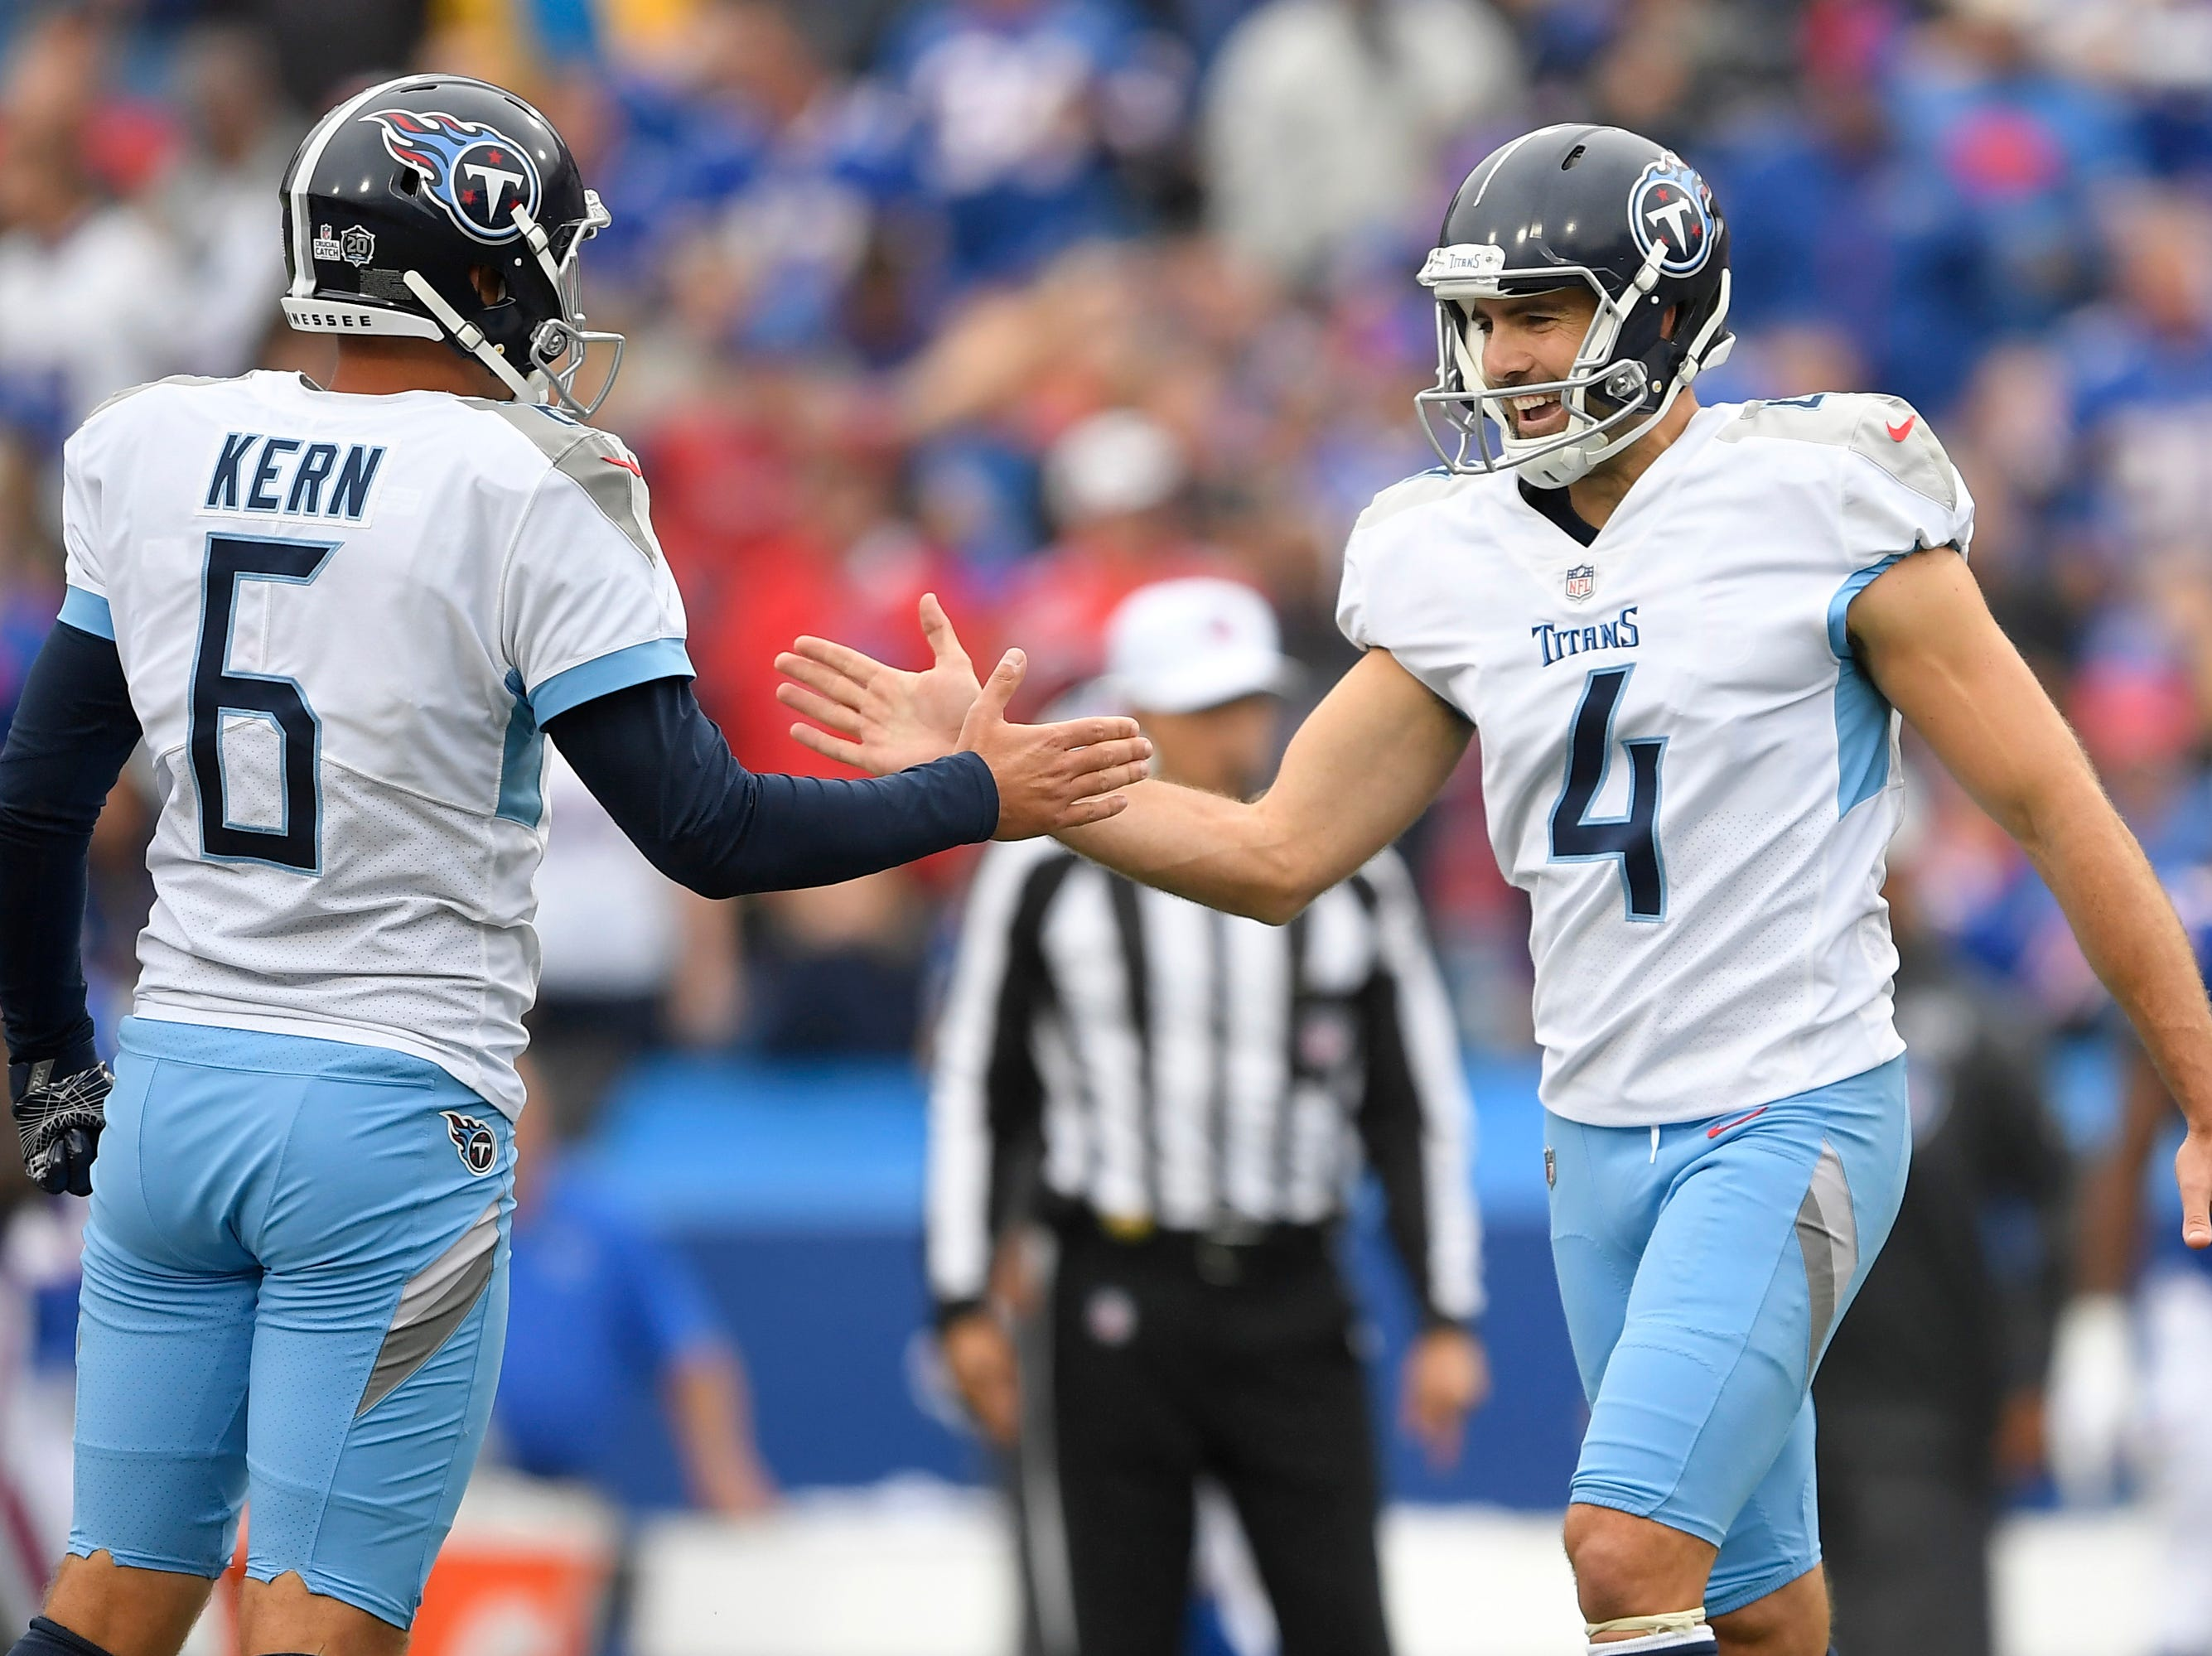 Tennessee Titans kicker Ryan Succop (4) celebrates his field goal with Brett Kern (6) during the first half of an NFL football game against the Buffalo Bills, Sunday, Oct. 7, 2018, in Orchard Park, N.Y. (AP Photo/Adrian Kraus)